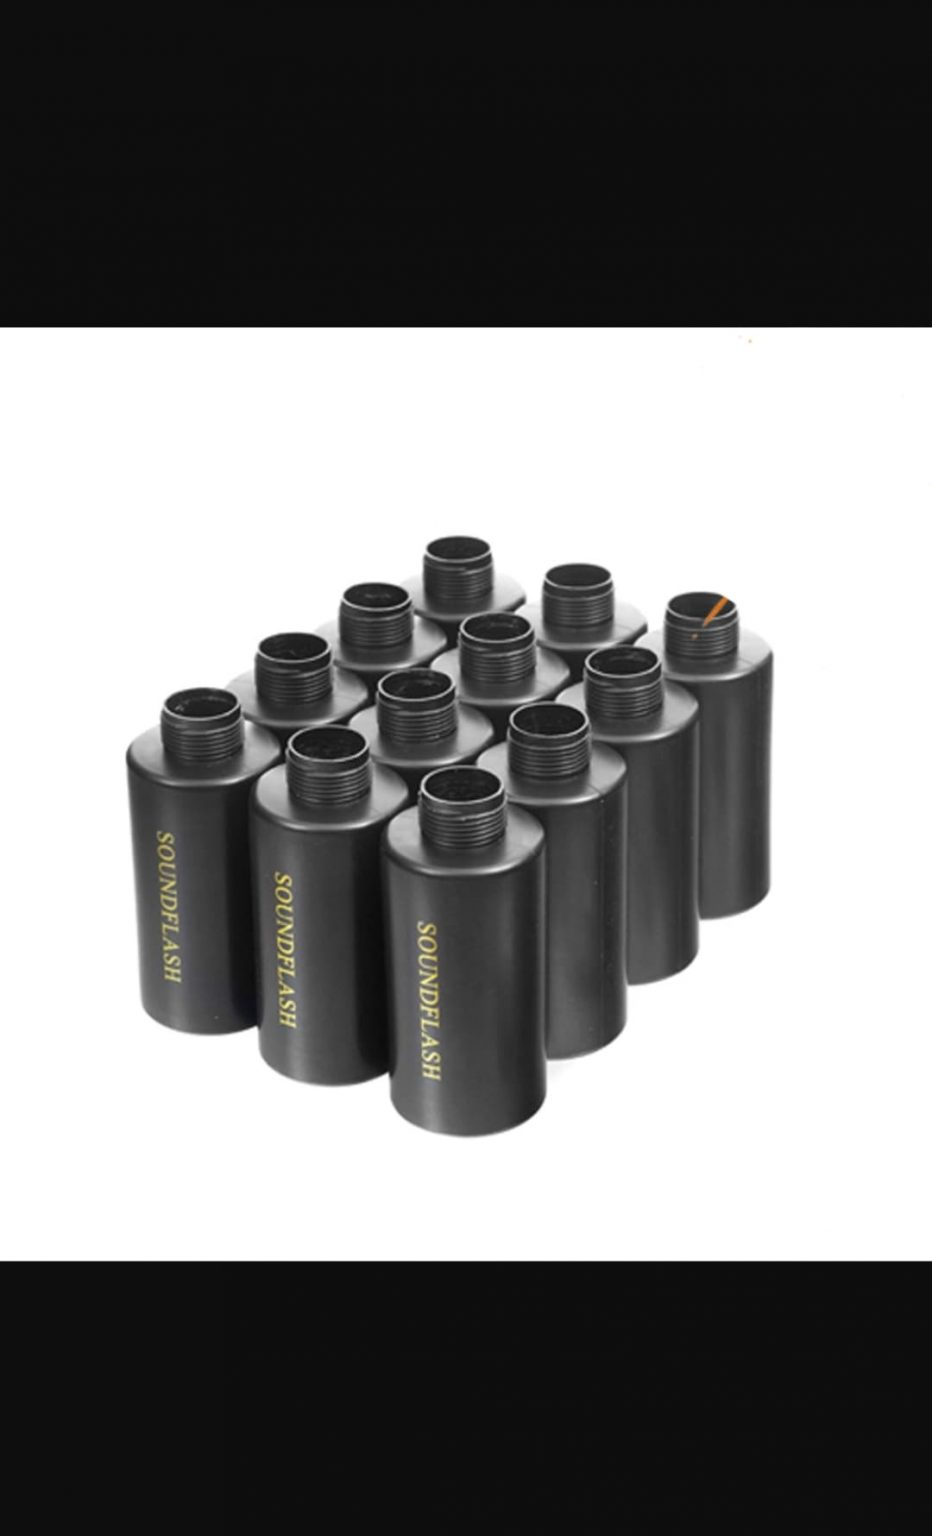 CO2 Grenade Canisters